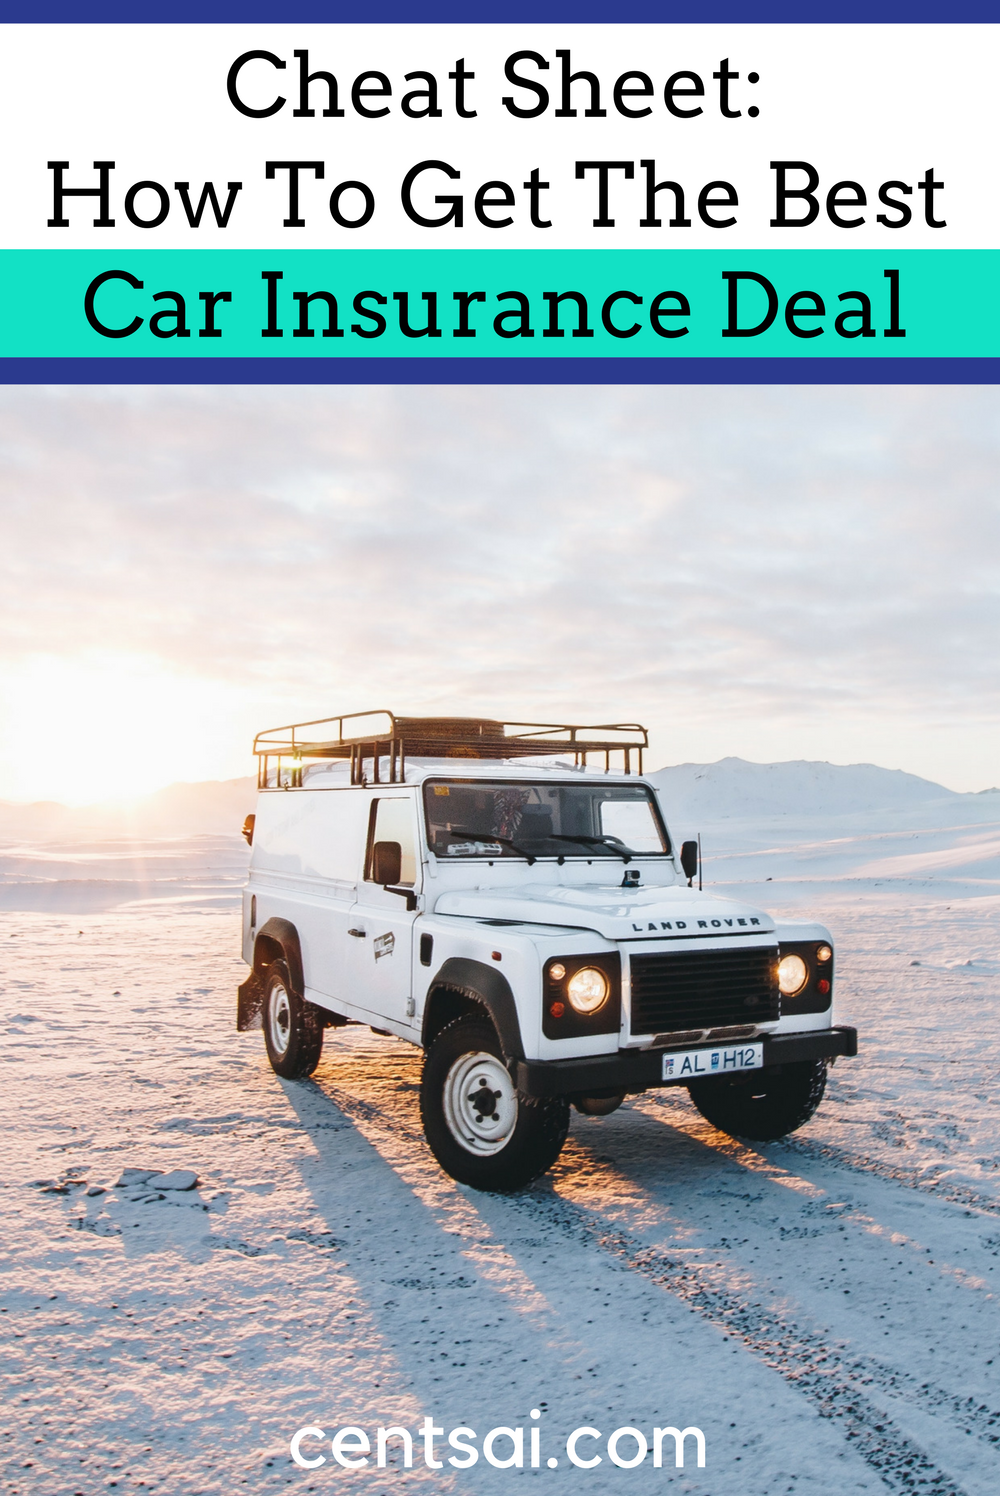 How Do I Search For The Best Car Insurance Plan For Me Is There A